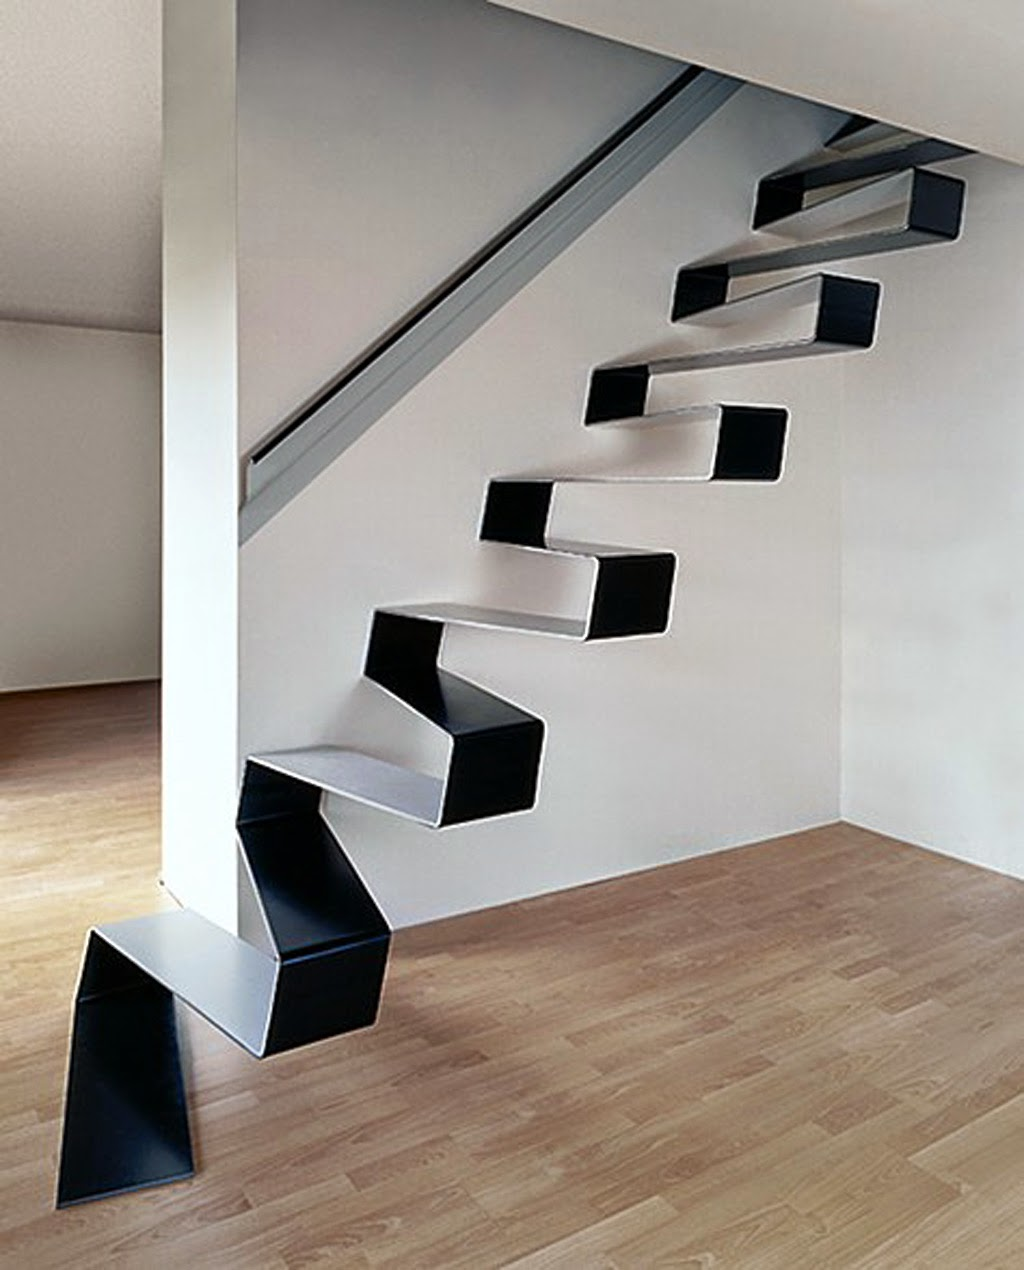 Stair Design Budget And Important Things To Consider: 9 Interesting Interior Stairs Design Ideas With Low Budget